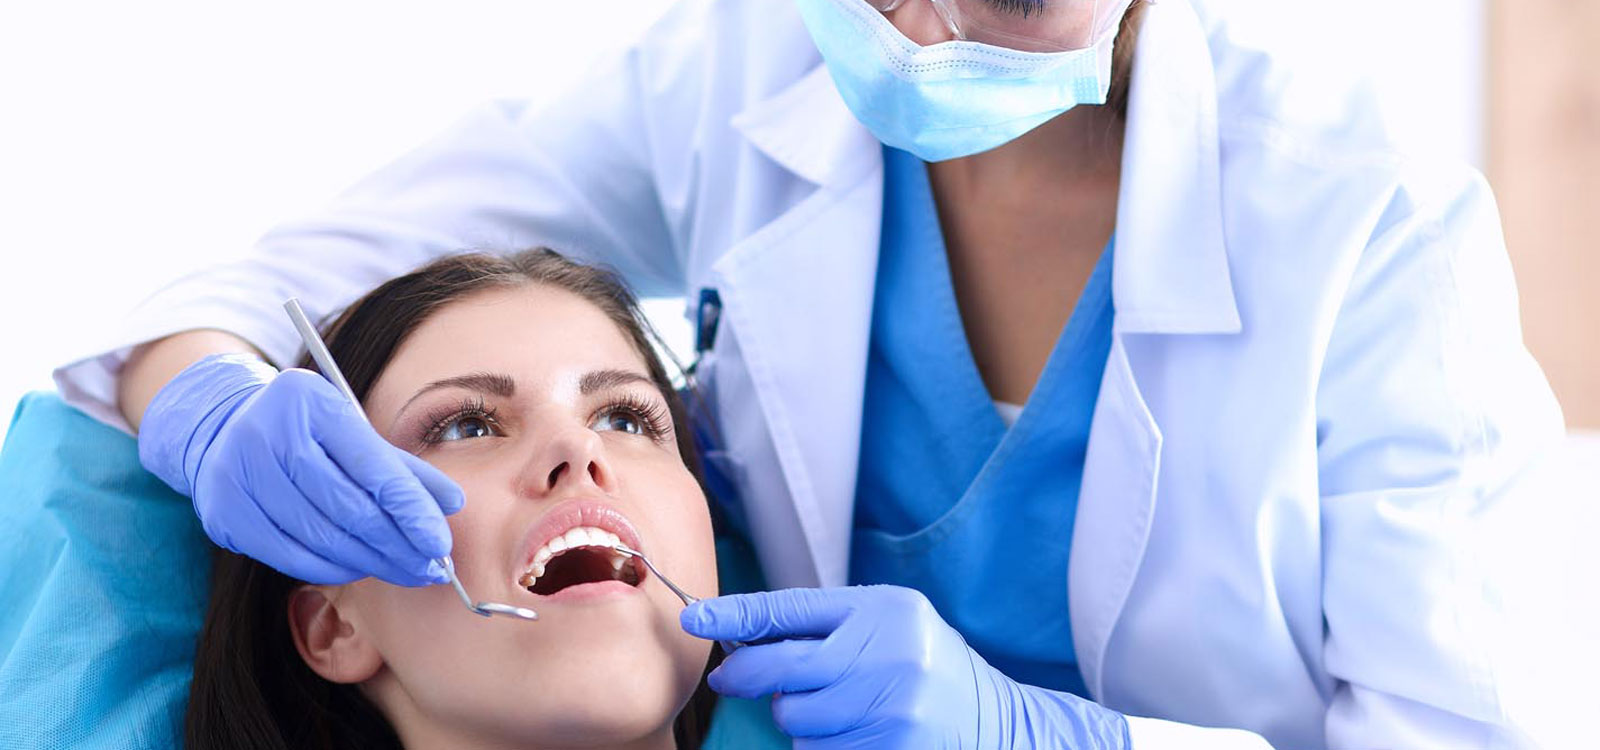 Dental injuries and dental emergency